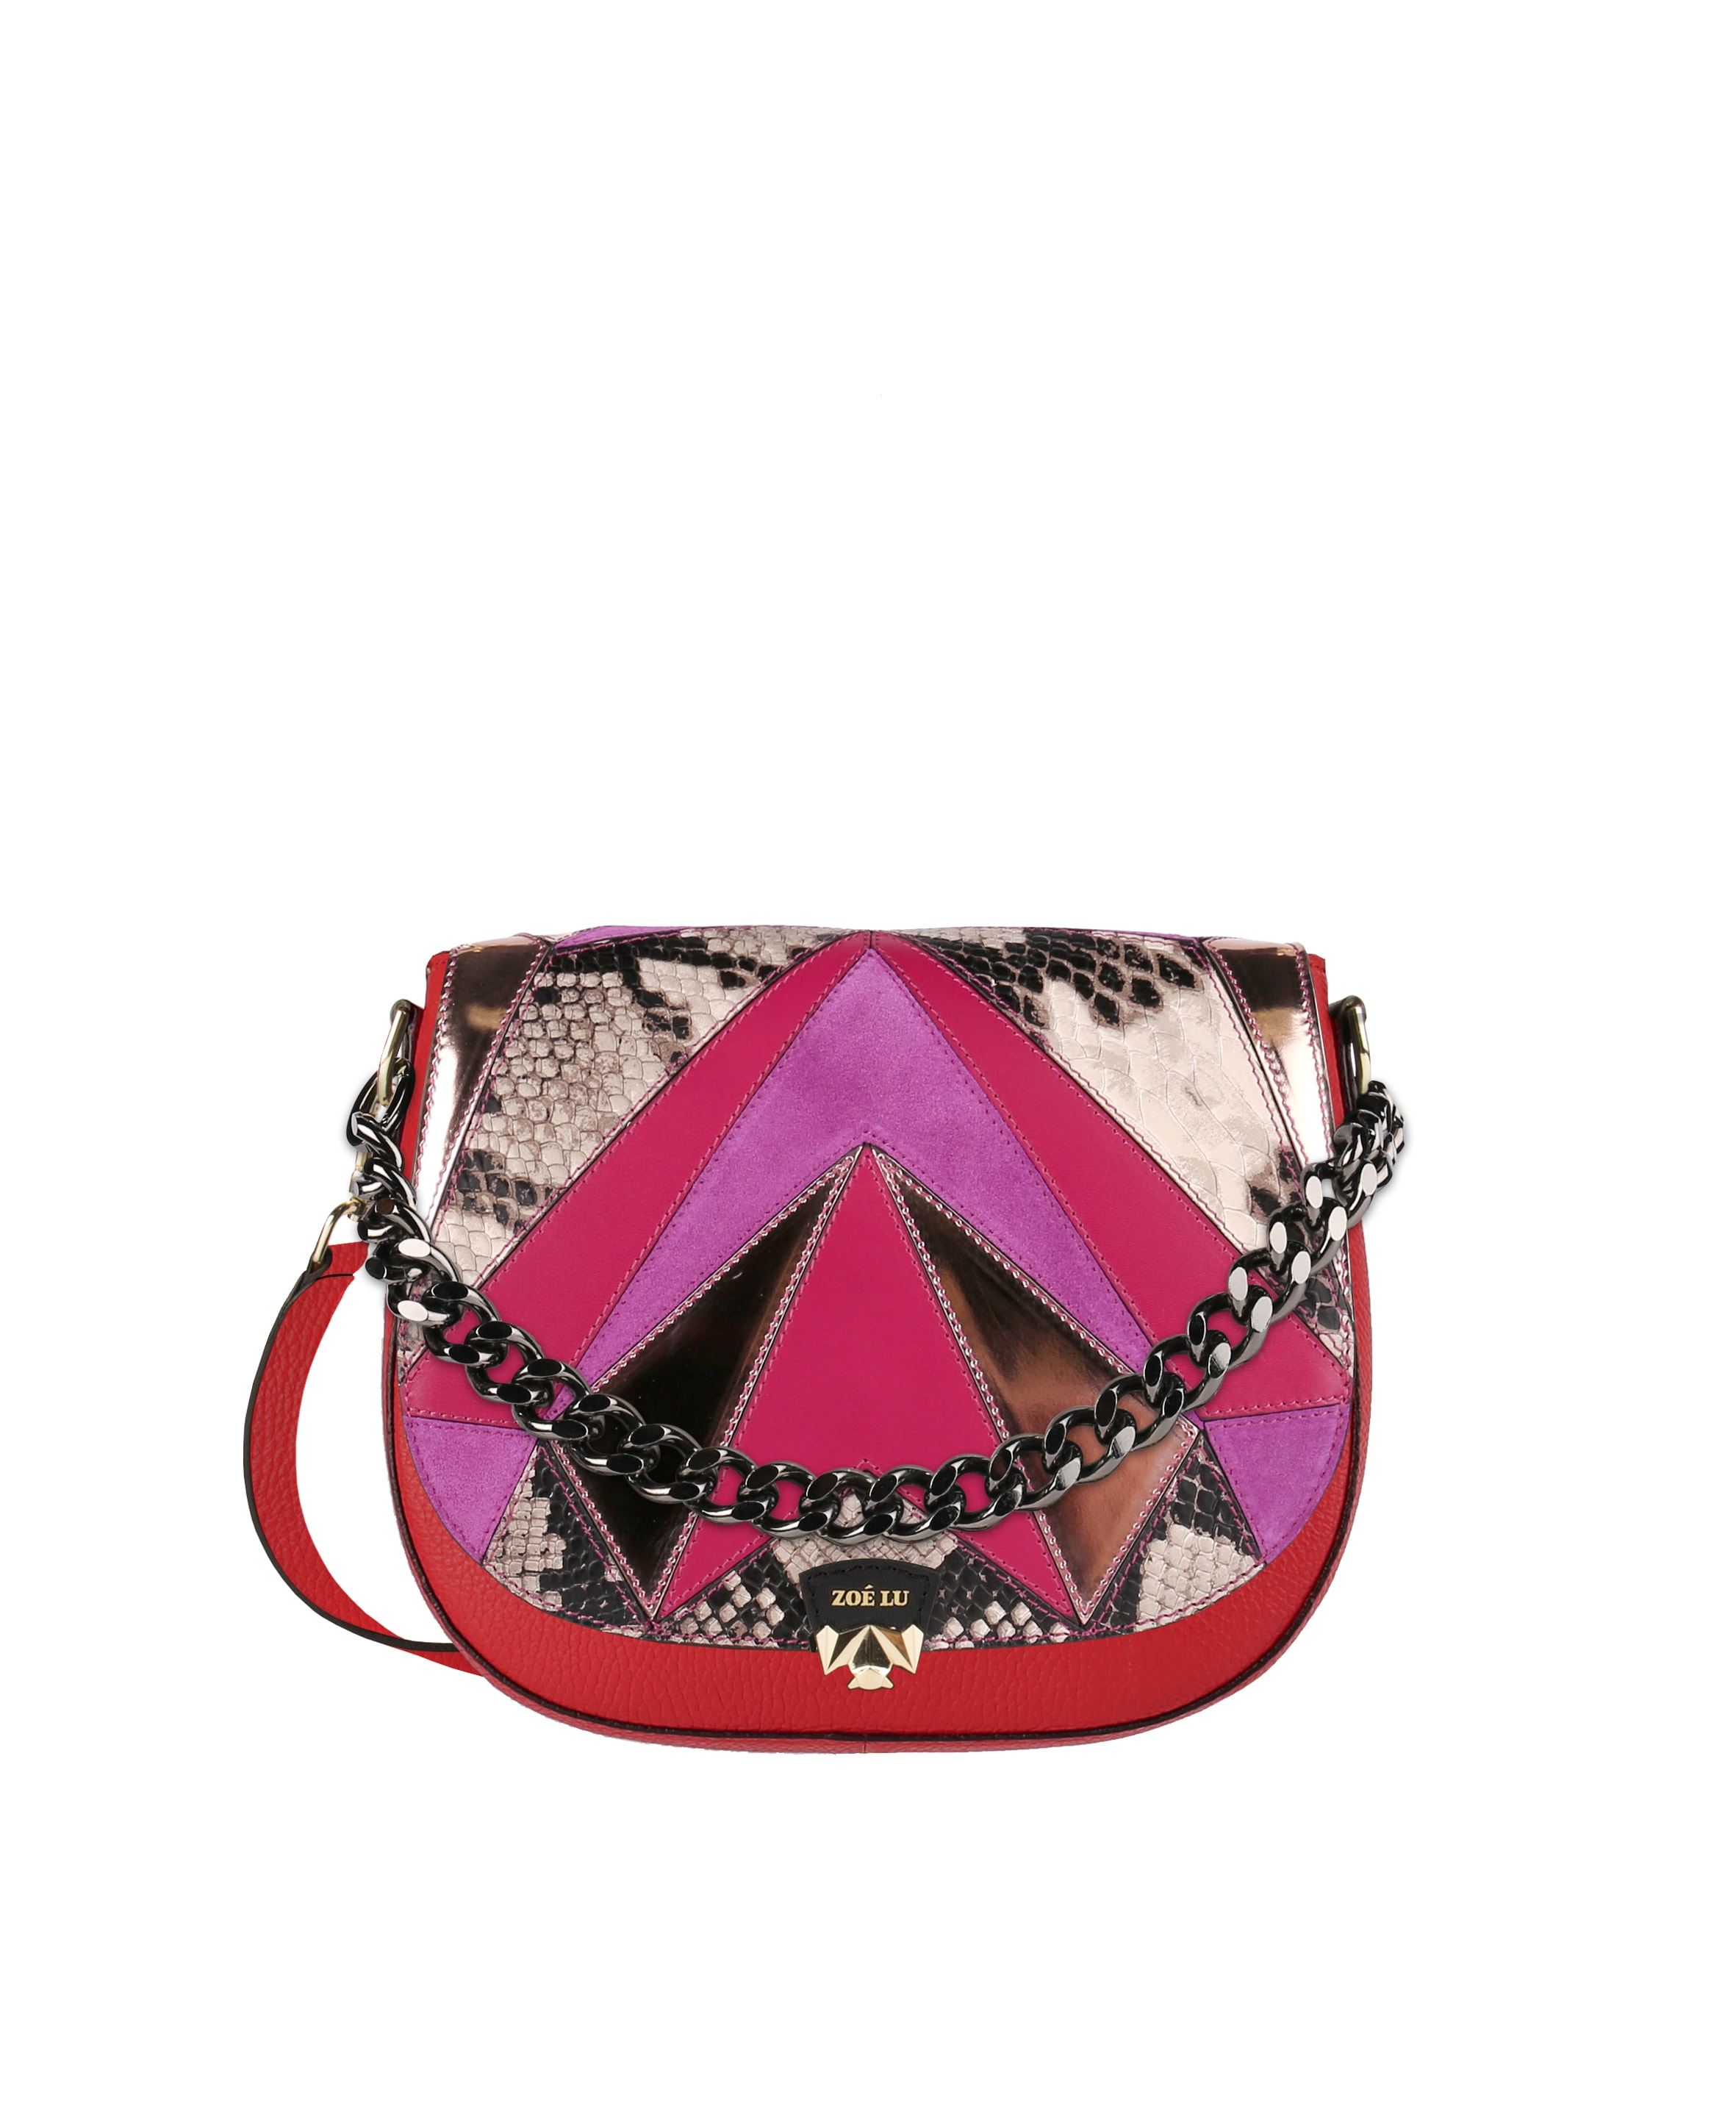 zoe-lu-tasche-red-silly-saturday-fuchsia-mix-pimp-up-gunmetal